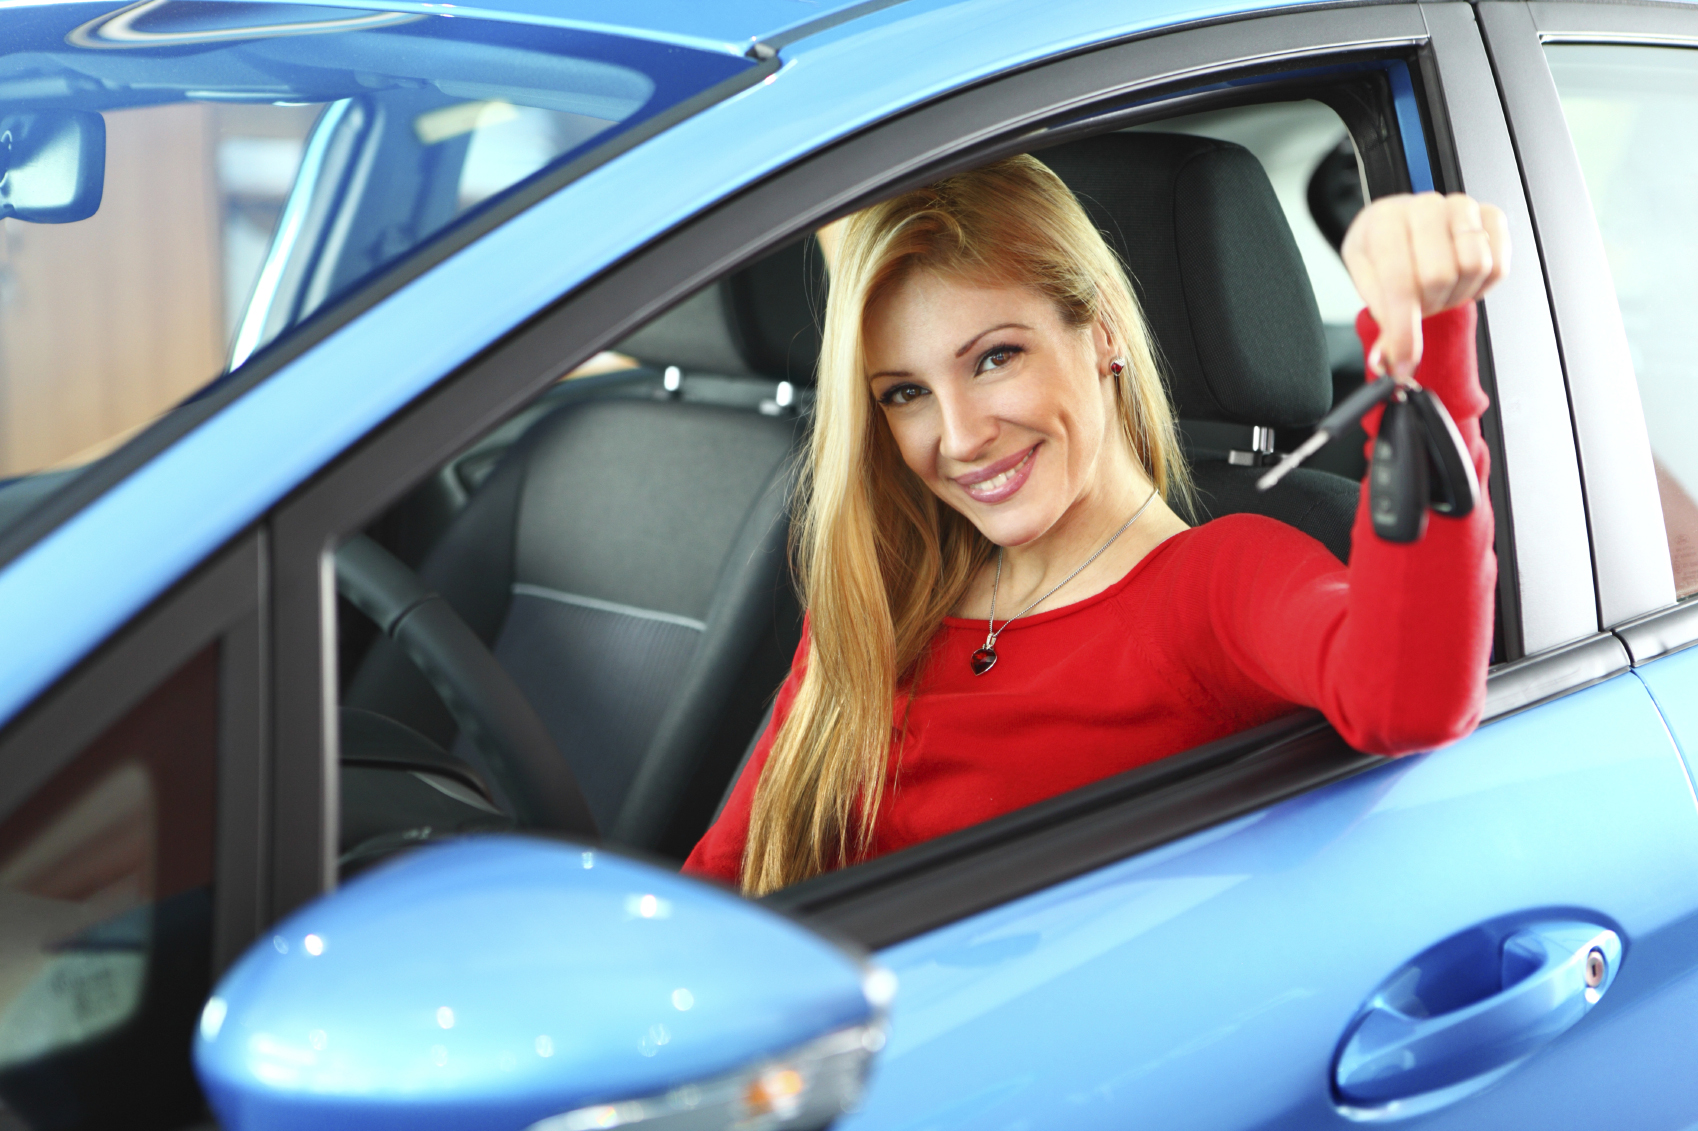 Used Cars For Sale In Northern Va: Best Used Cars For Sale Near Fairfax, VA